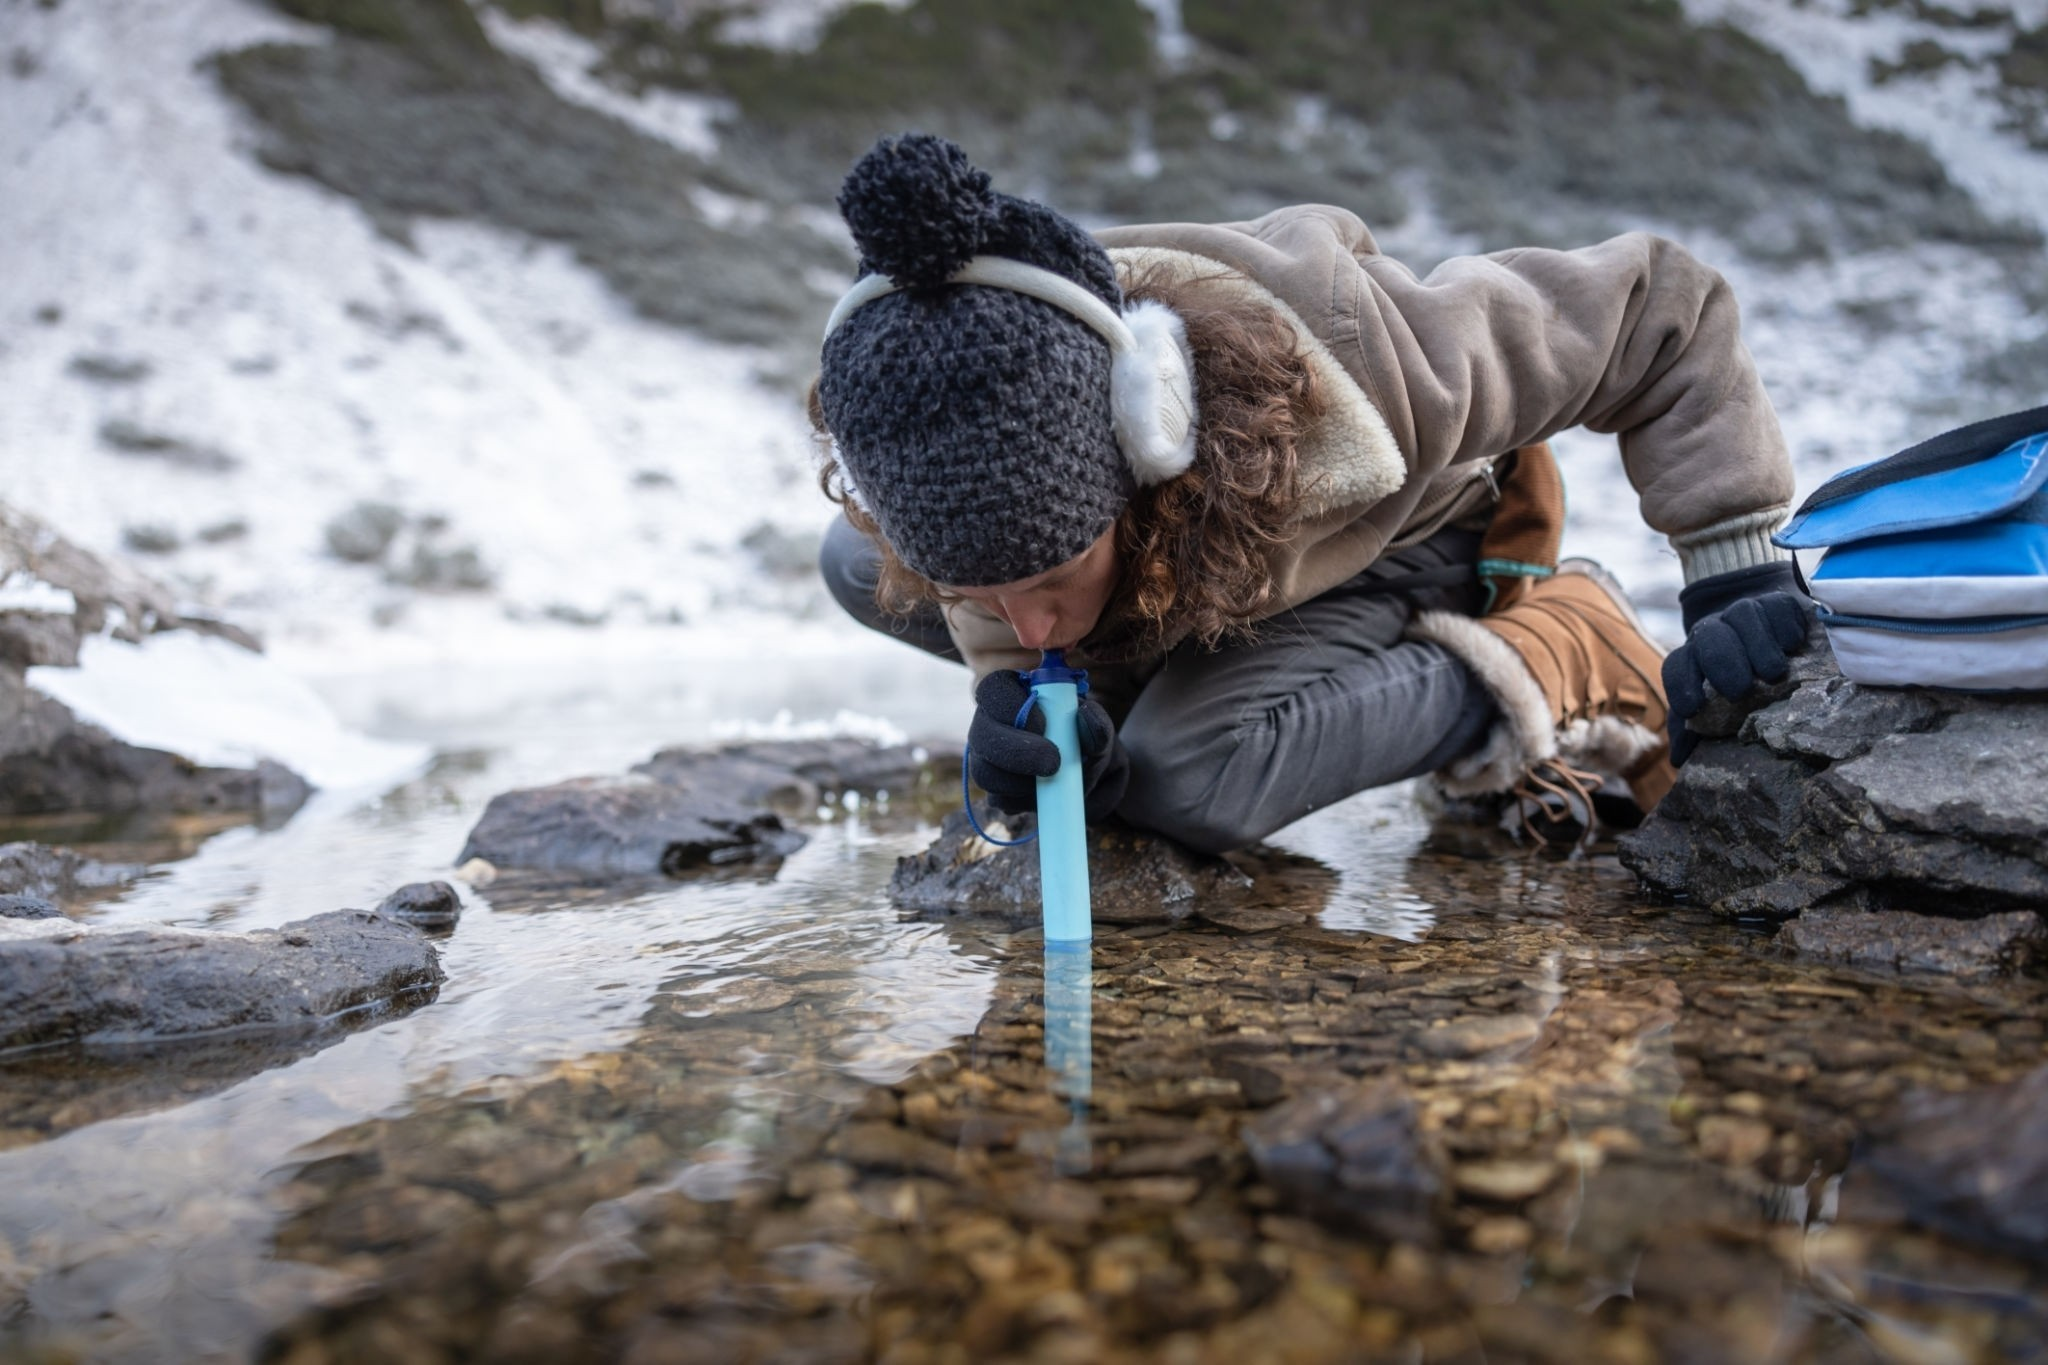 Water Filtration Tips from Preppers